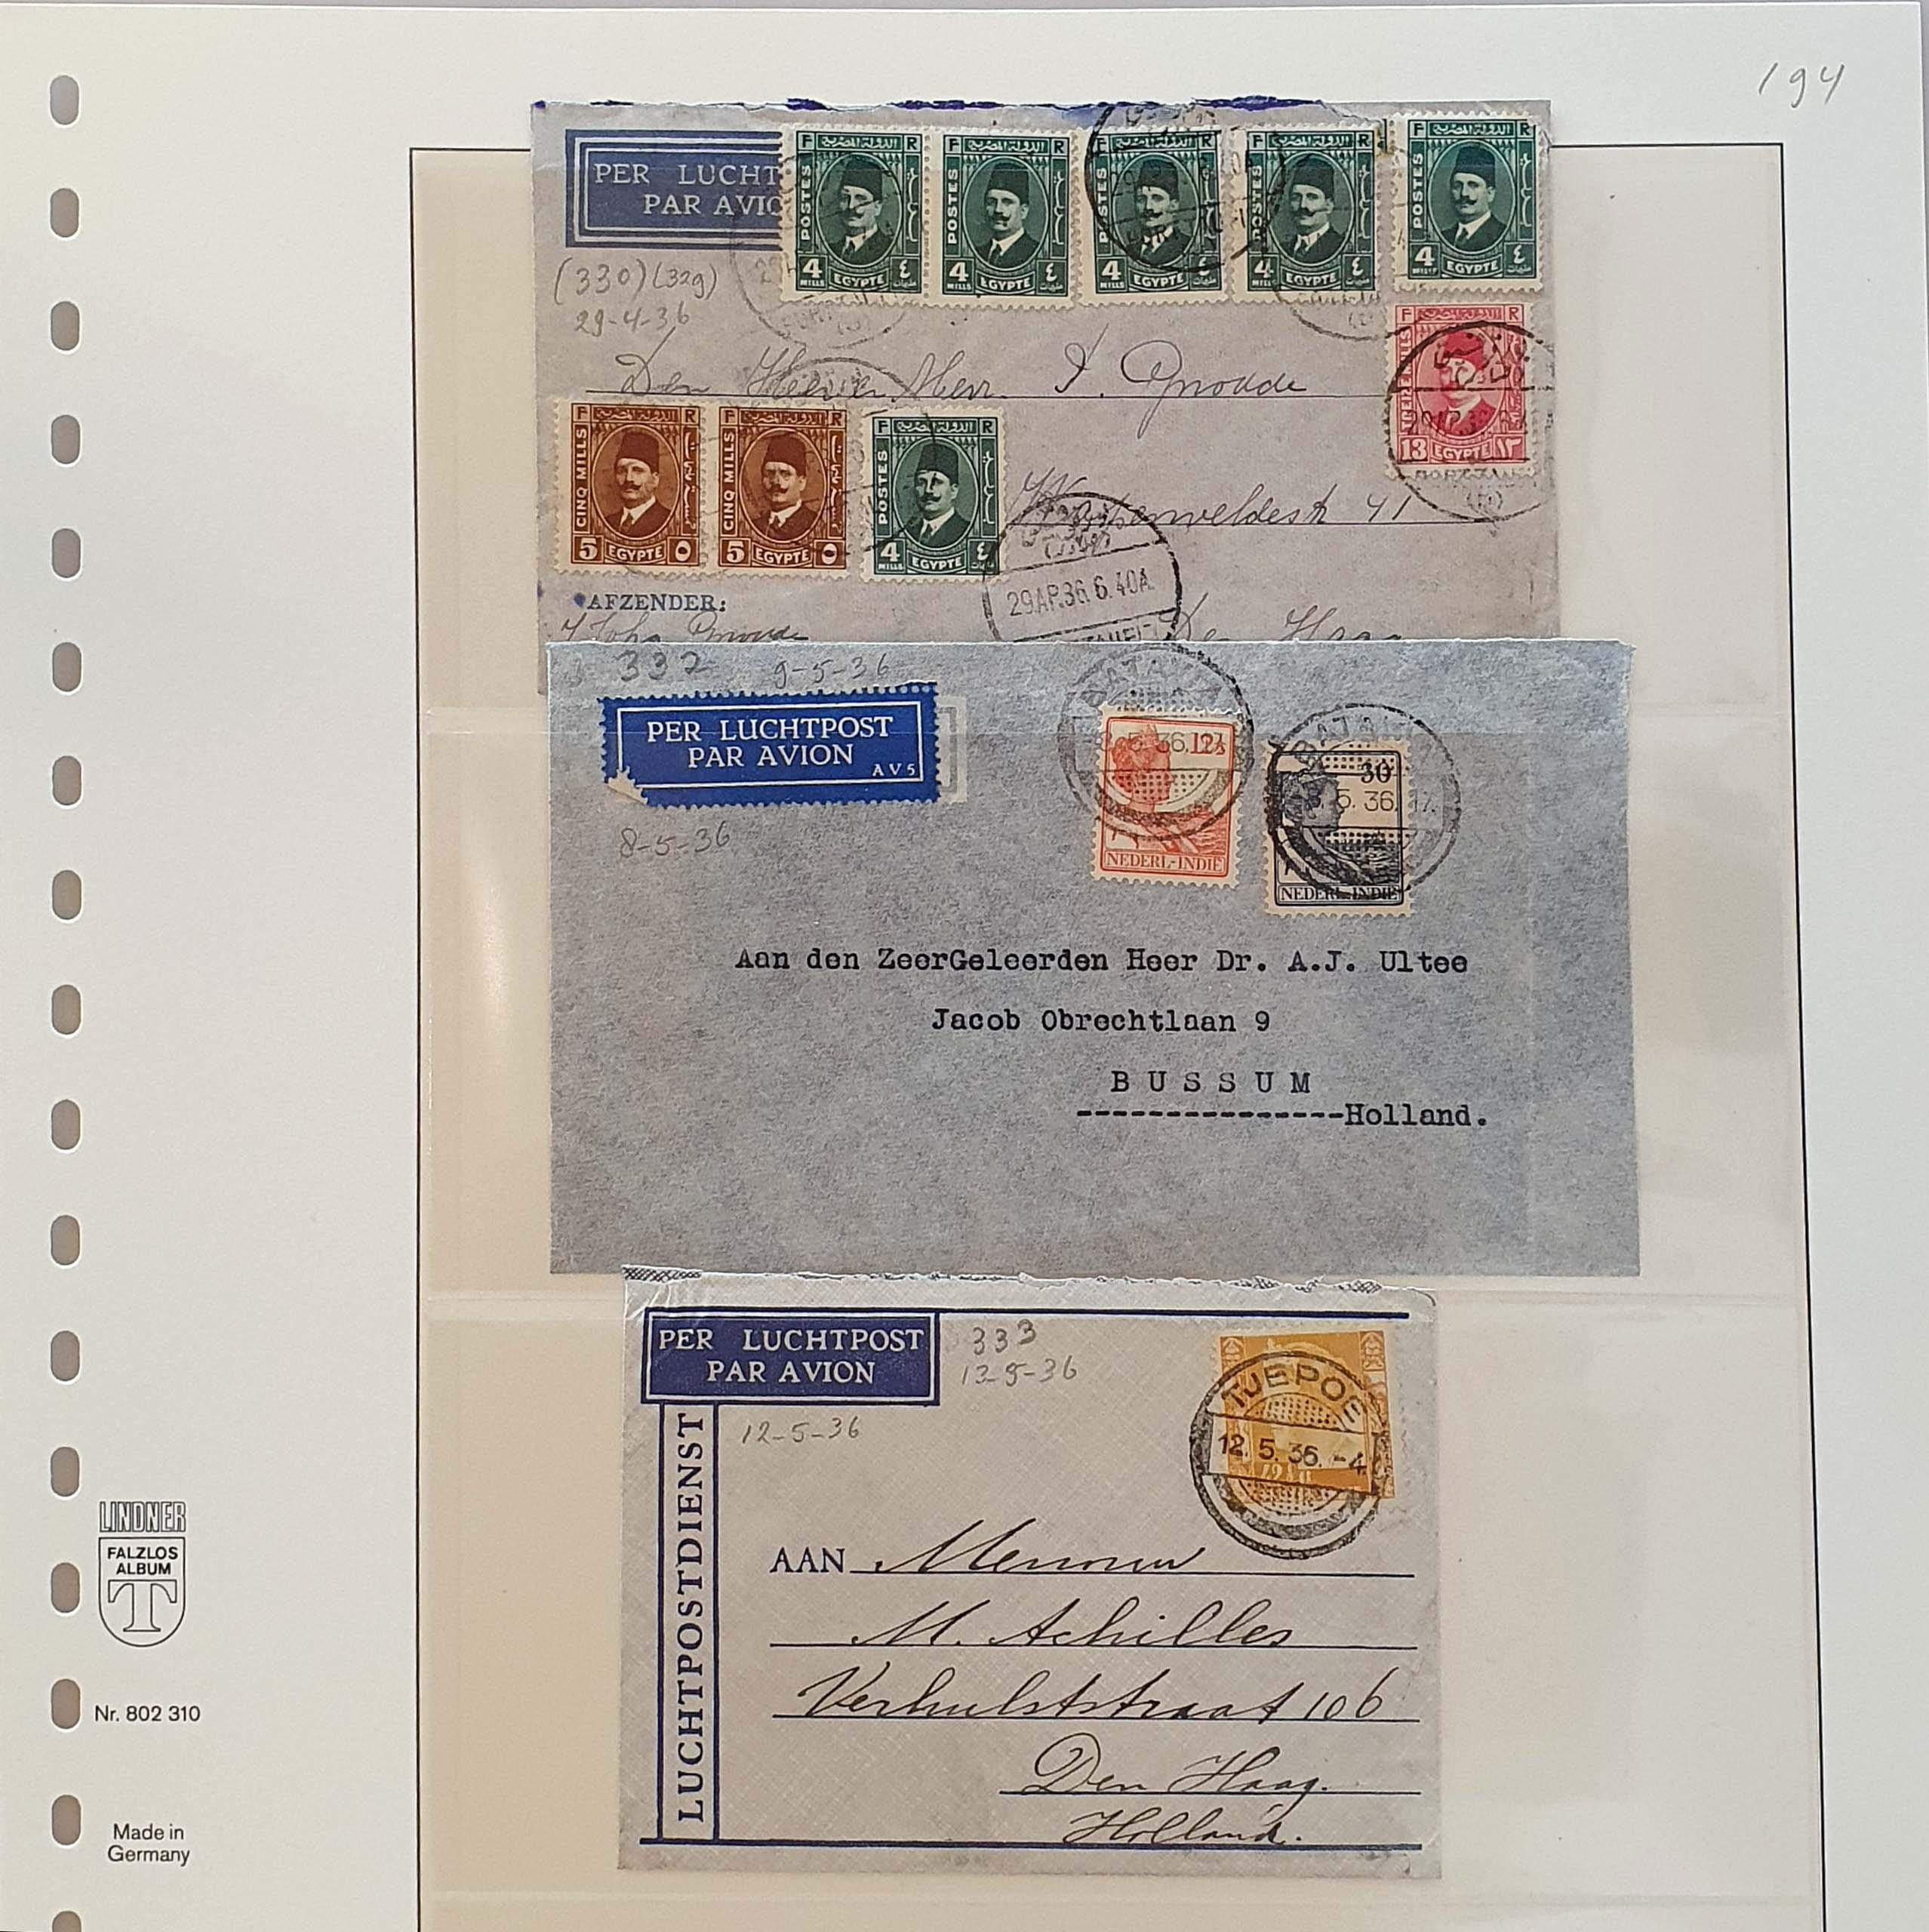 Lot 1610 - Netherlands and former colonies Netherlands -  Corinphila Veilingen Auction 250-253 - Day 2 - Coins, medals, Netherlands and former colonies